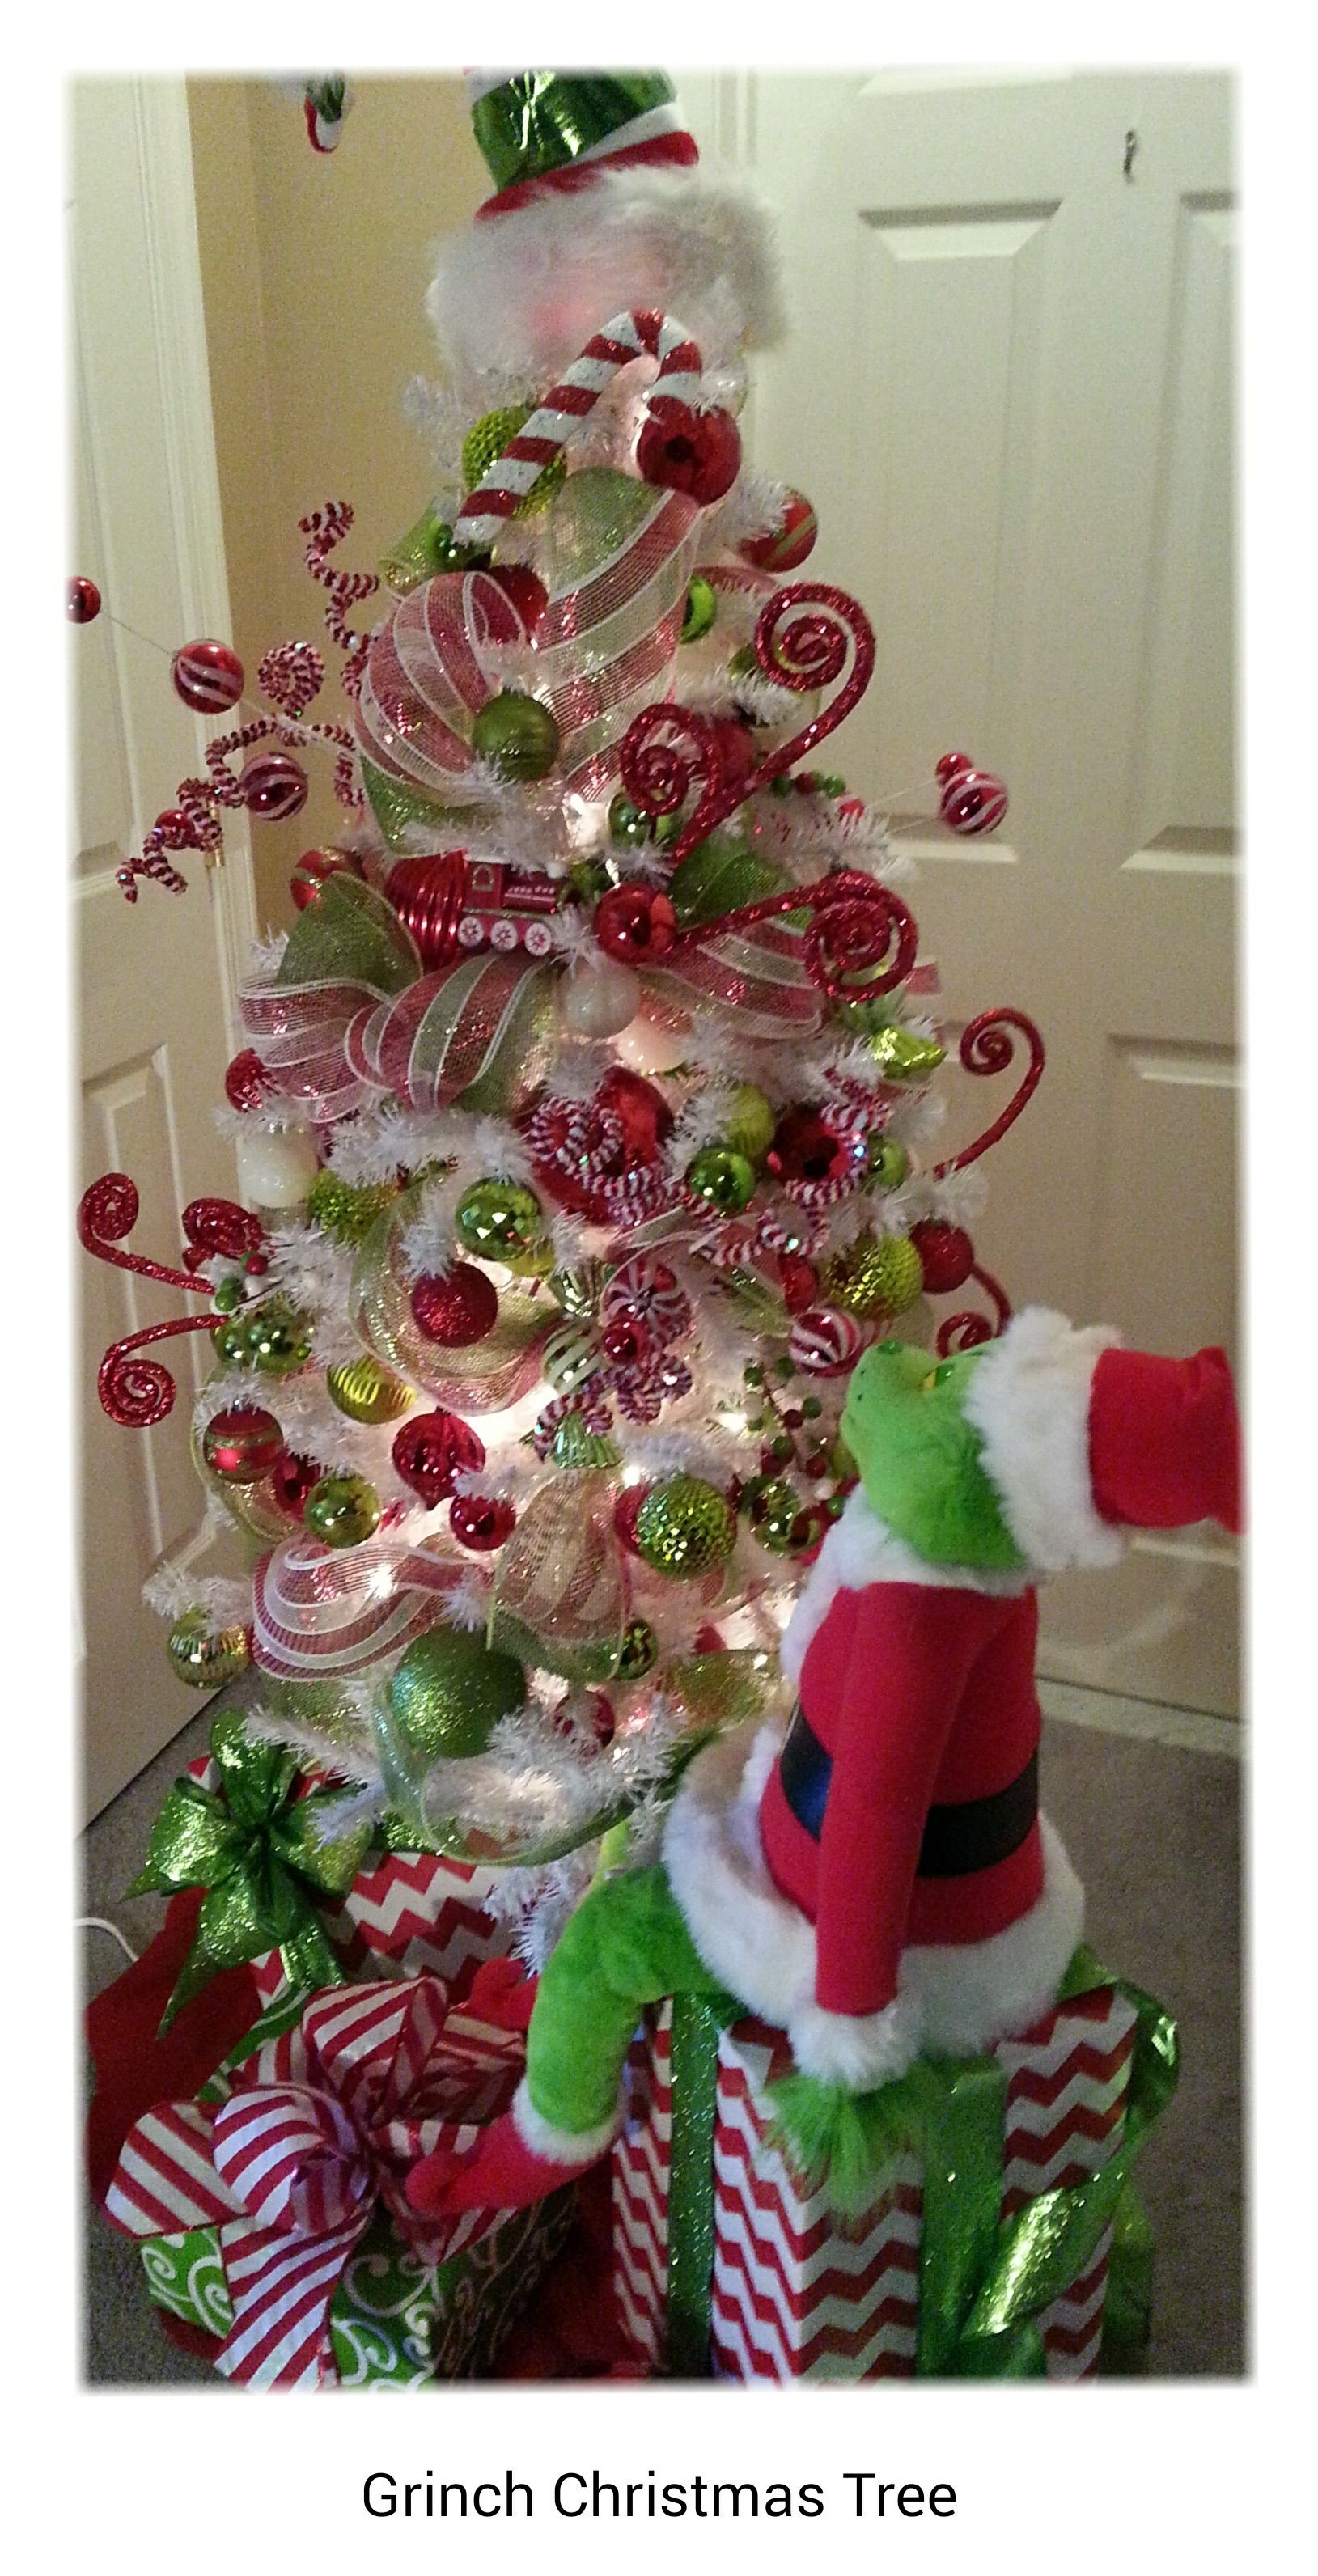 Grinch Has His Eye On Christmas Grinch Christmas Treechristmas Decorationsdiy